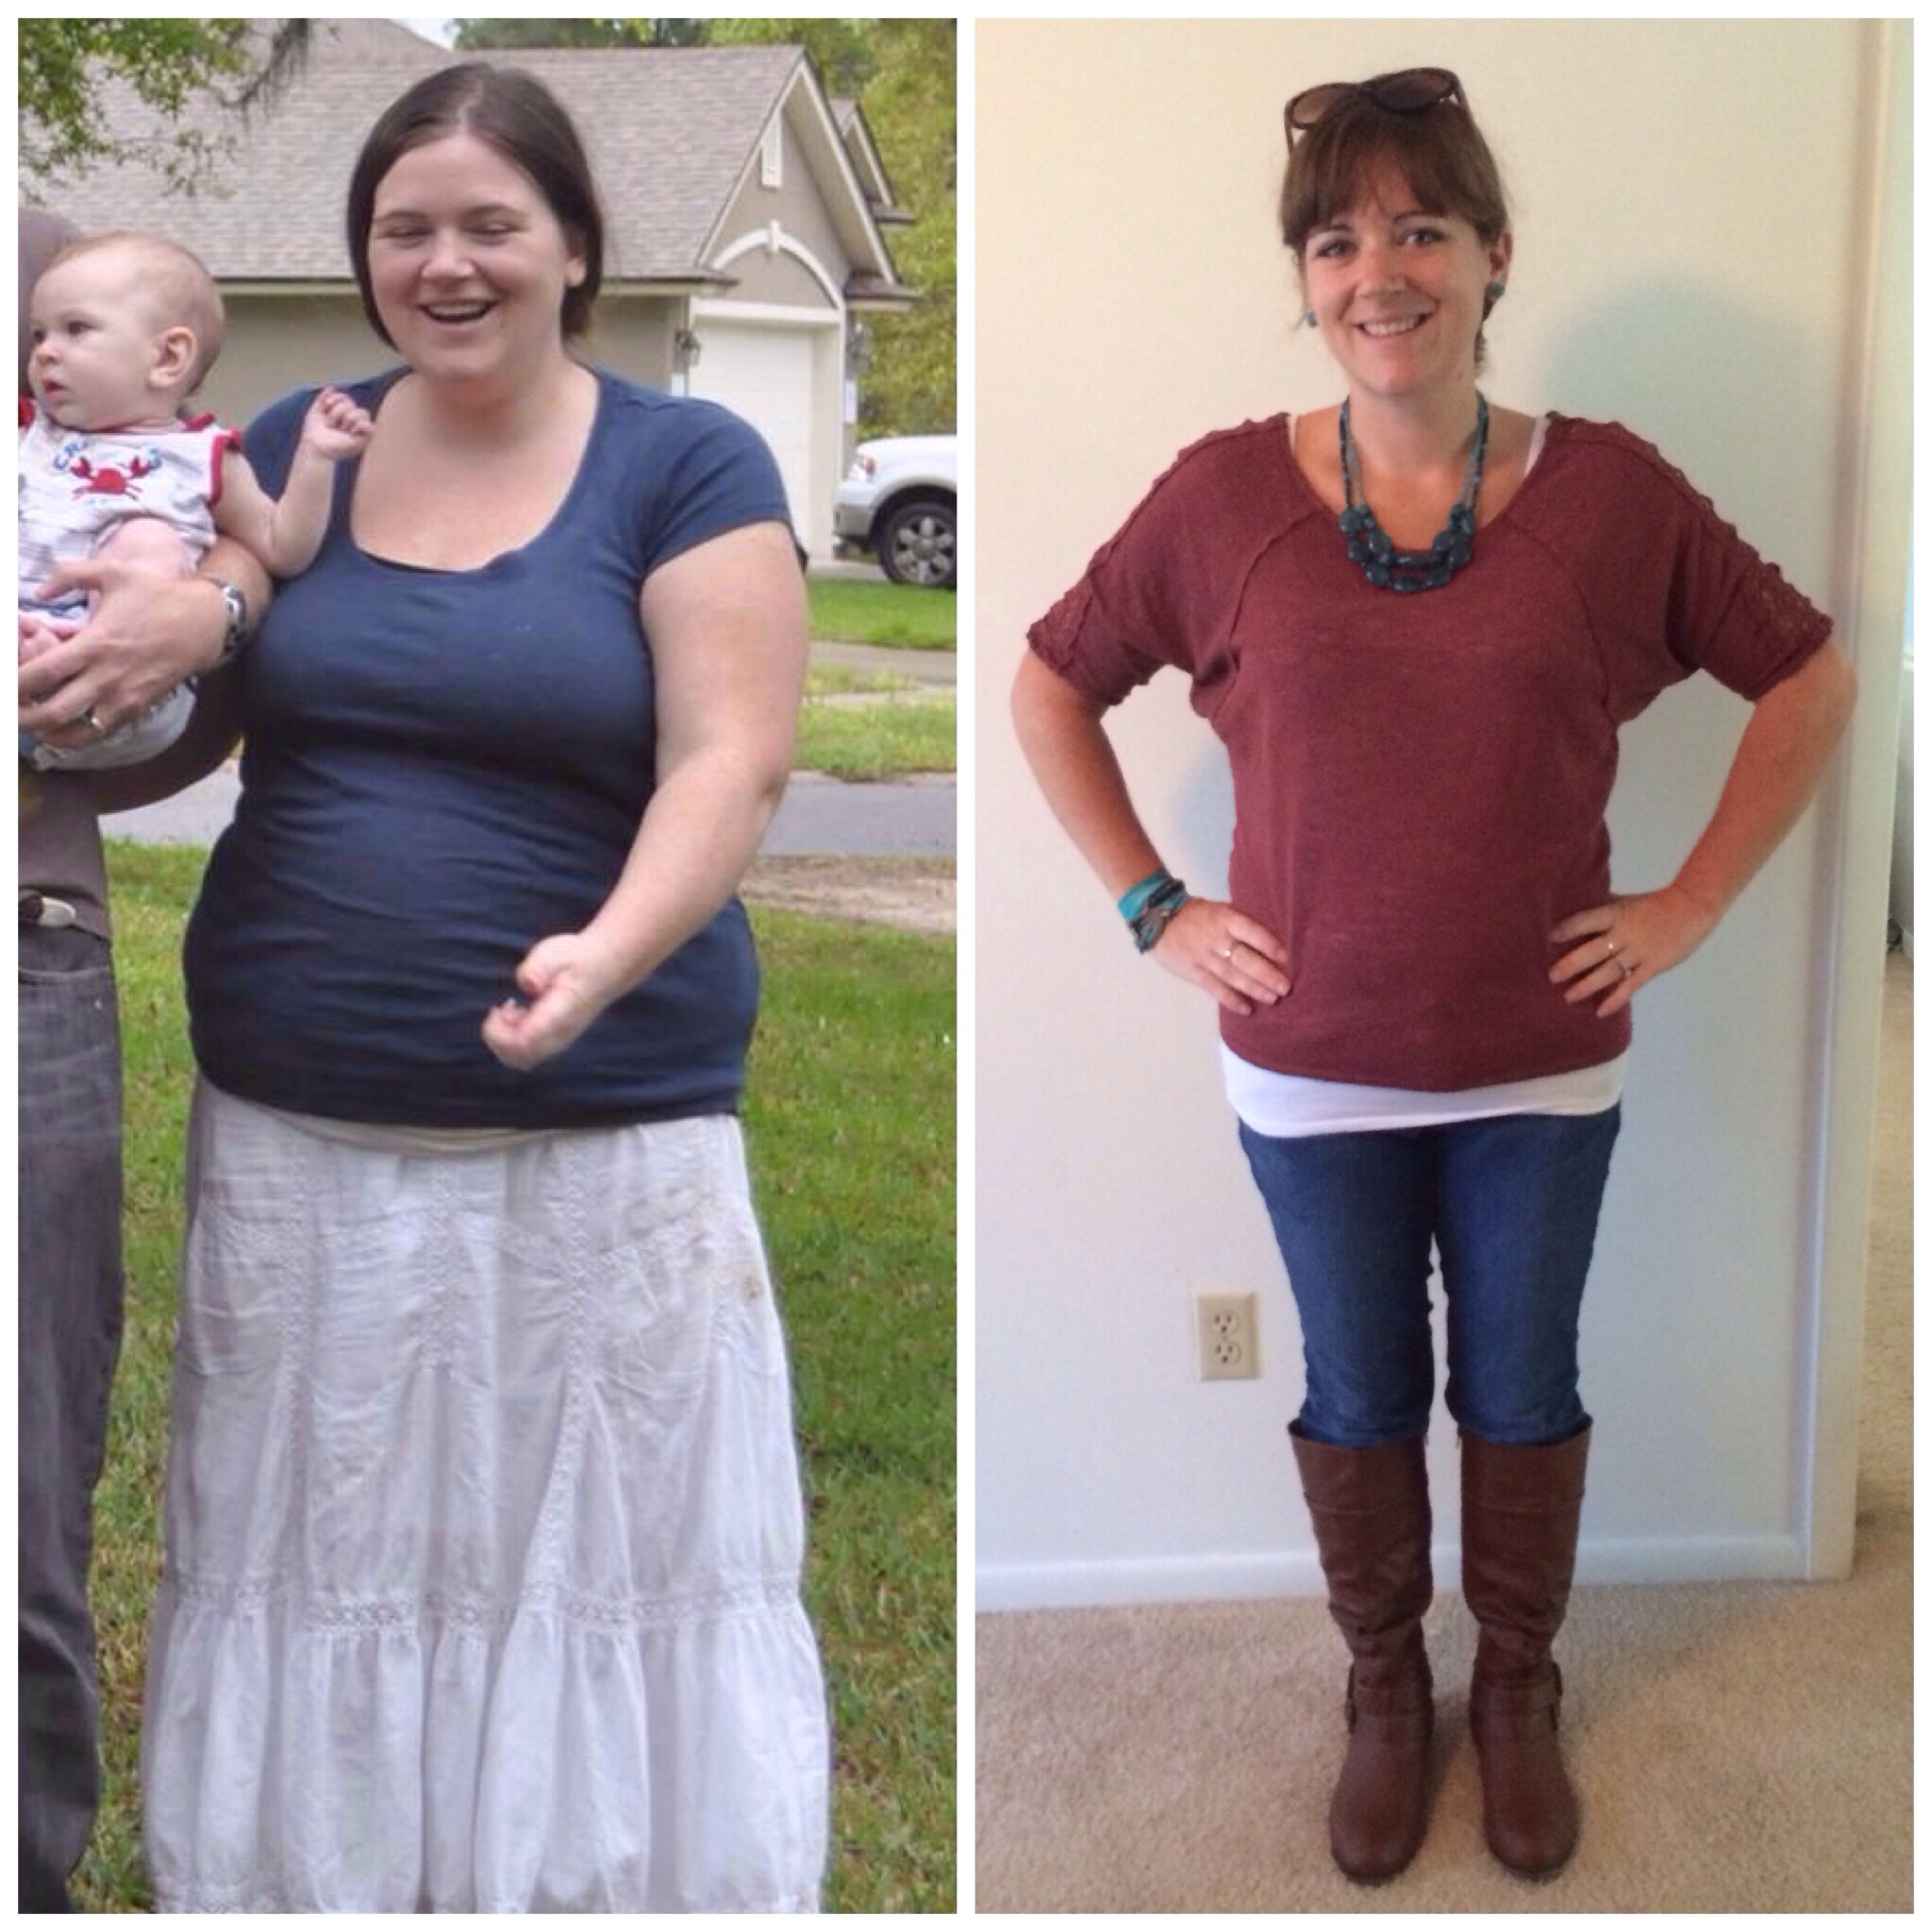 Great success story! Read before and after fitness transformation stories from women and men who hit weight loss goals and got THAT BODY with training and meal prep. Find inspiration, motivation, and workout tips | 115 Pounds Lost:  Losing the weight and finding myself